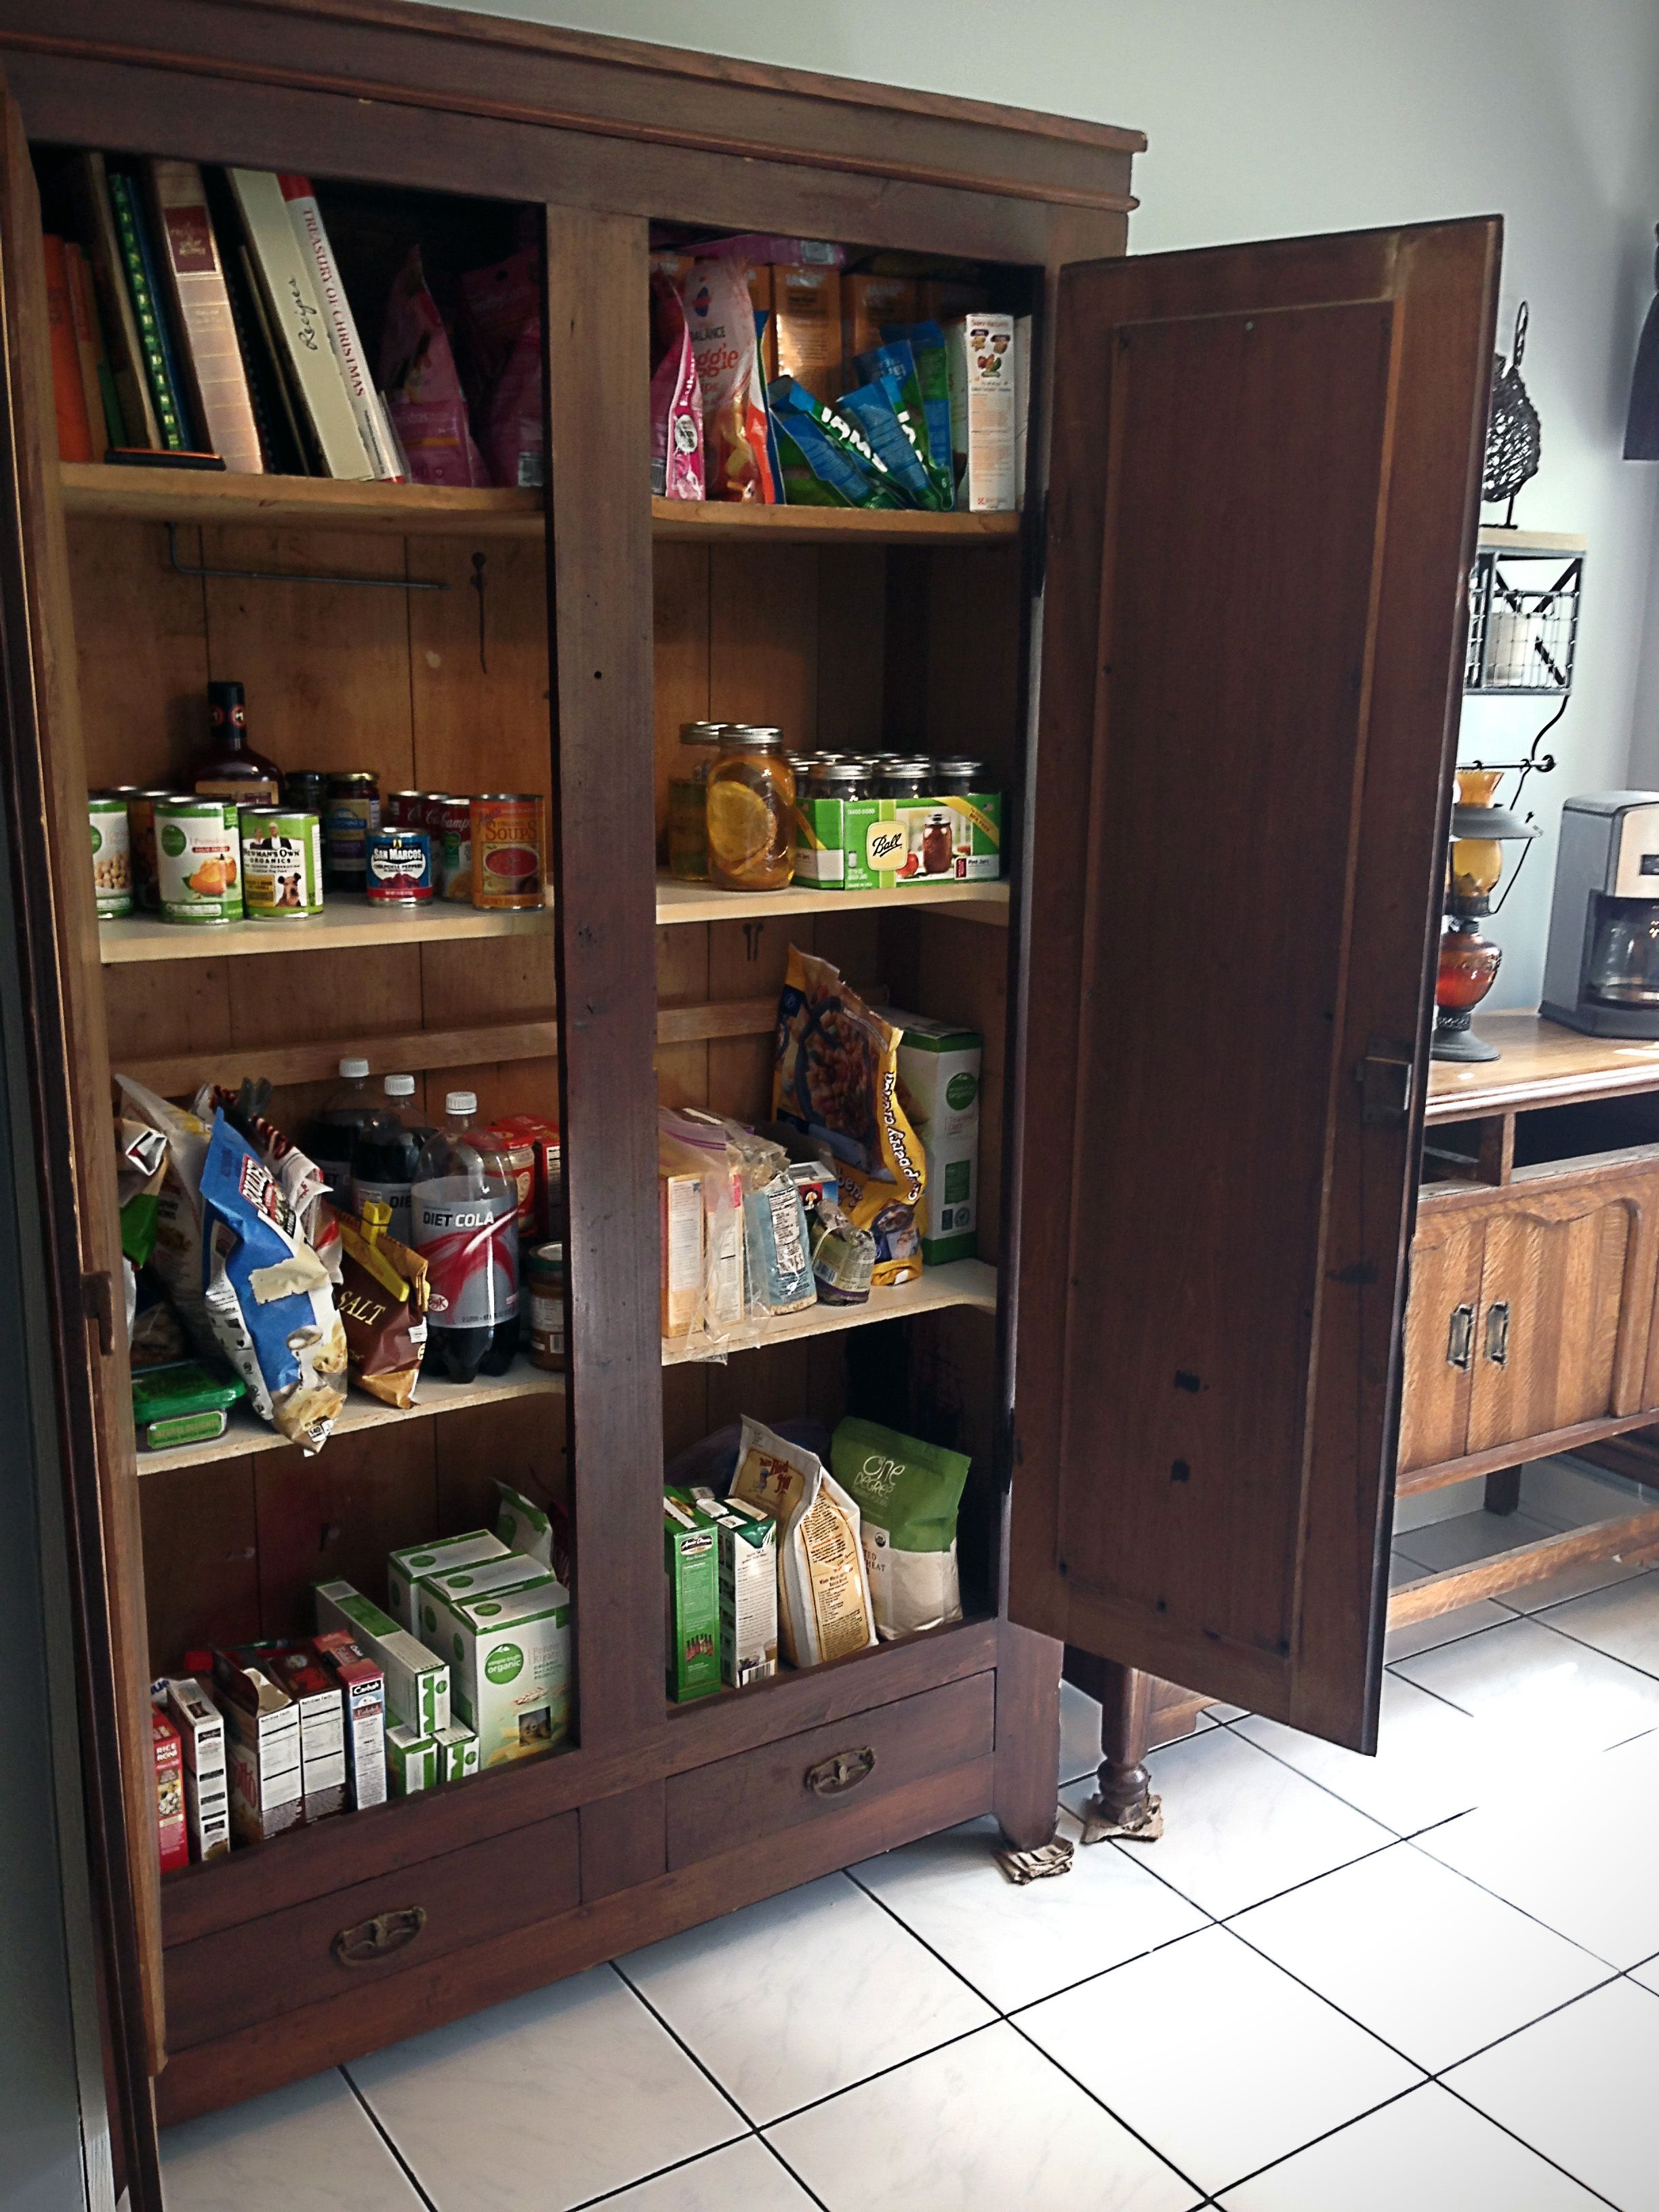 How To Turn An Old Wardrobe Into A Pantry Stand Alone Pantry Unfitted Kitchen Pantry Cabinet